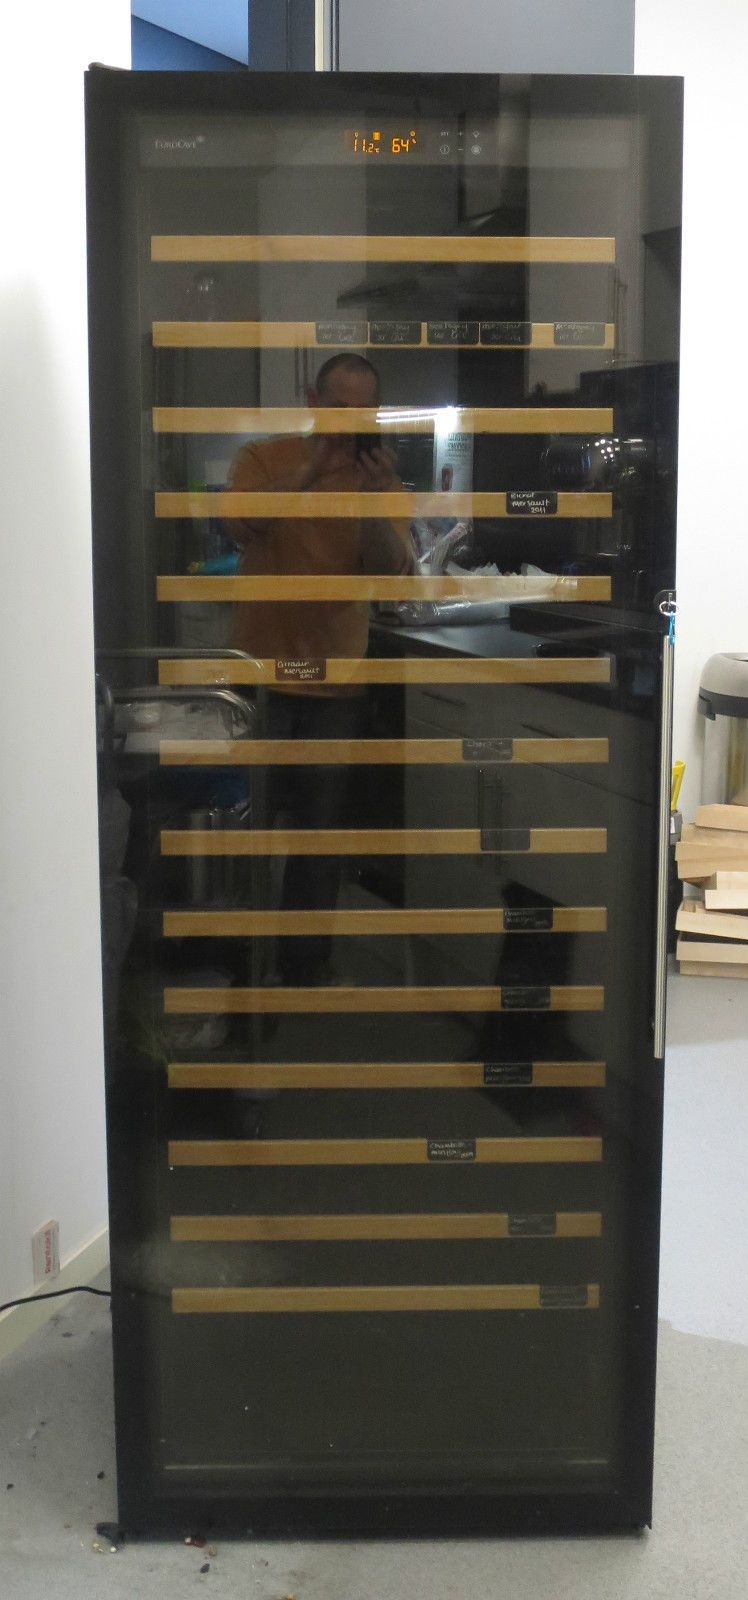 Eurocave | Eurocave Wine Cabinet | Eurocave Vieillitheque Confort V264